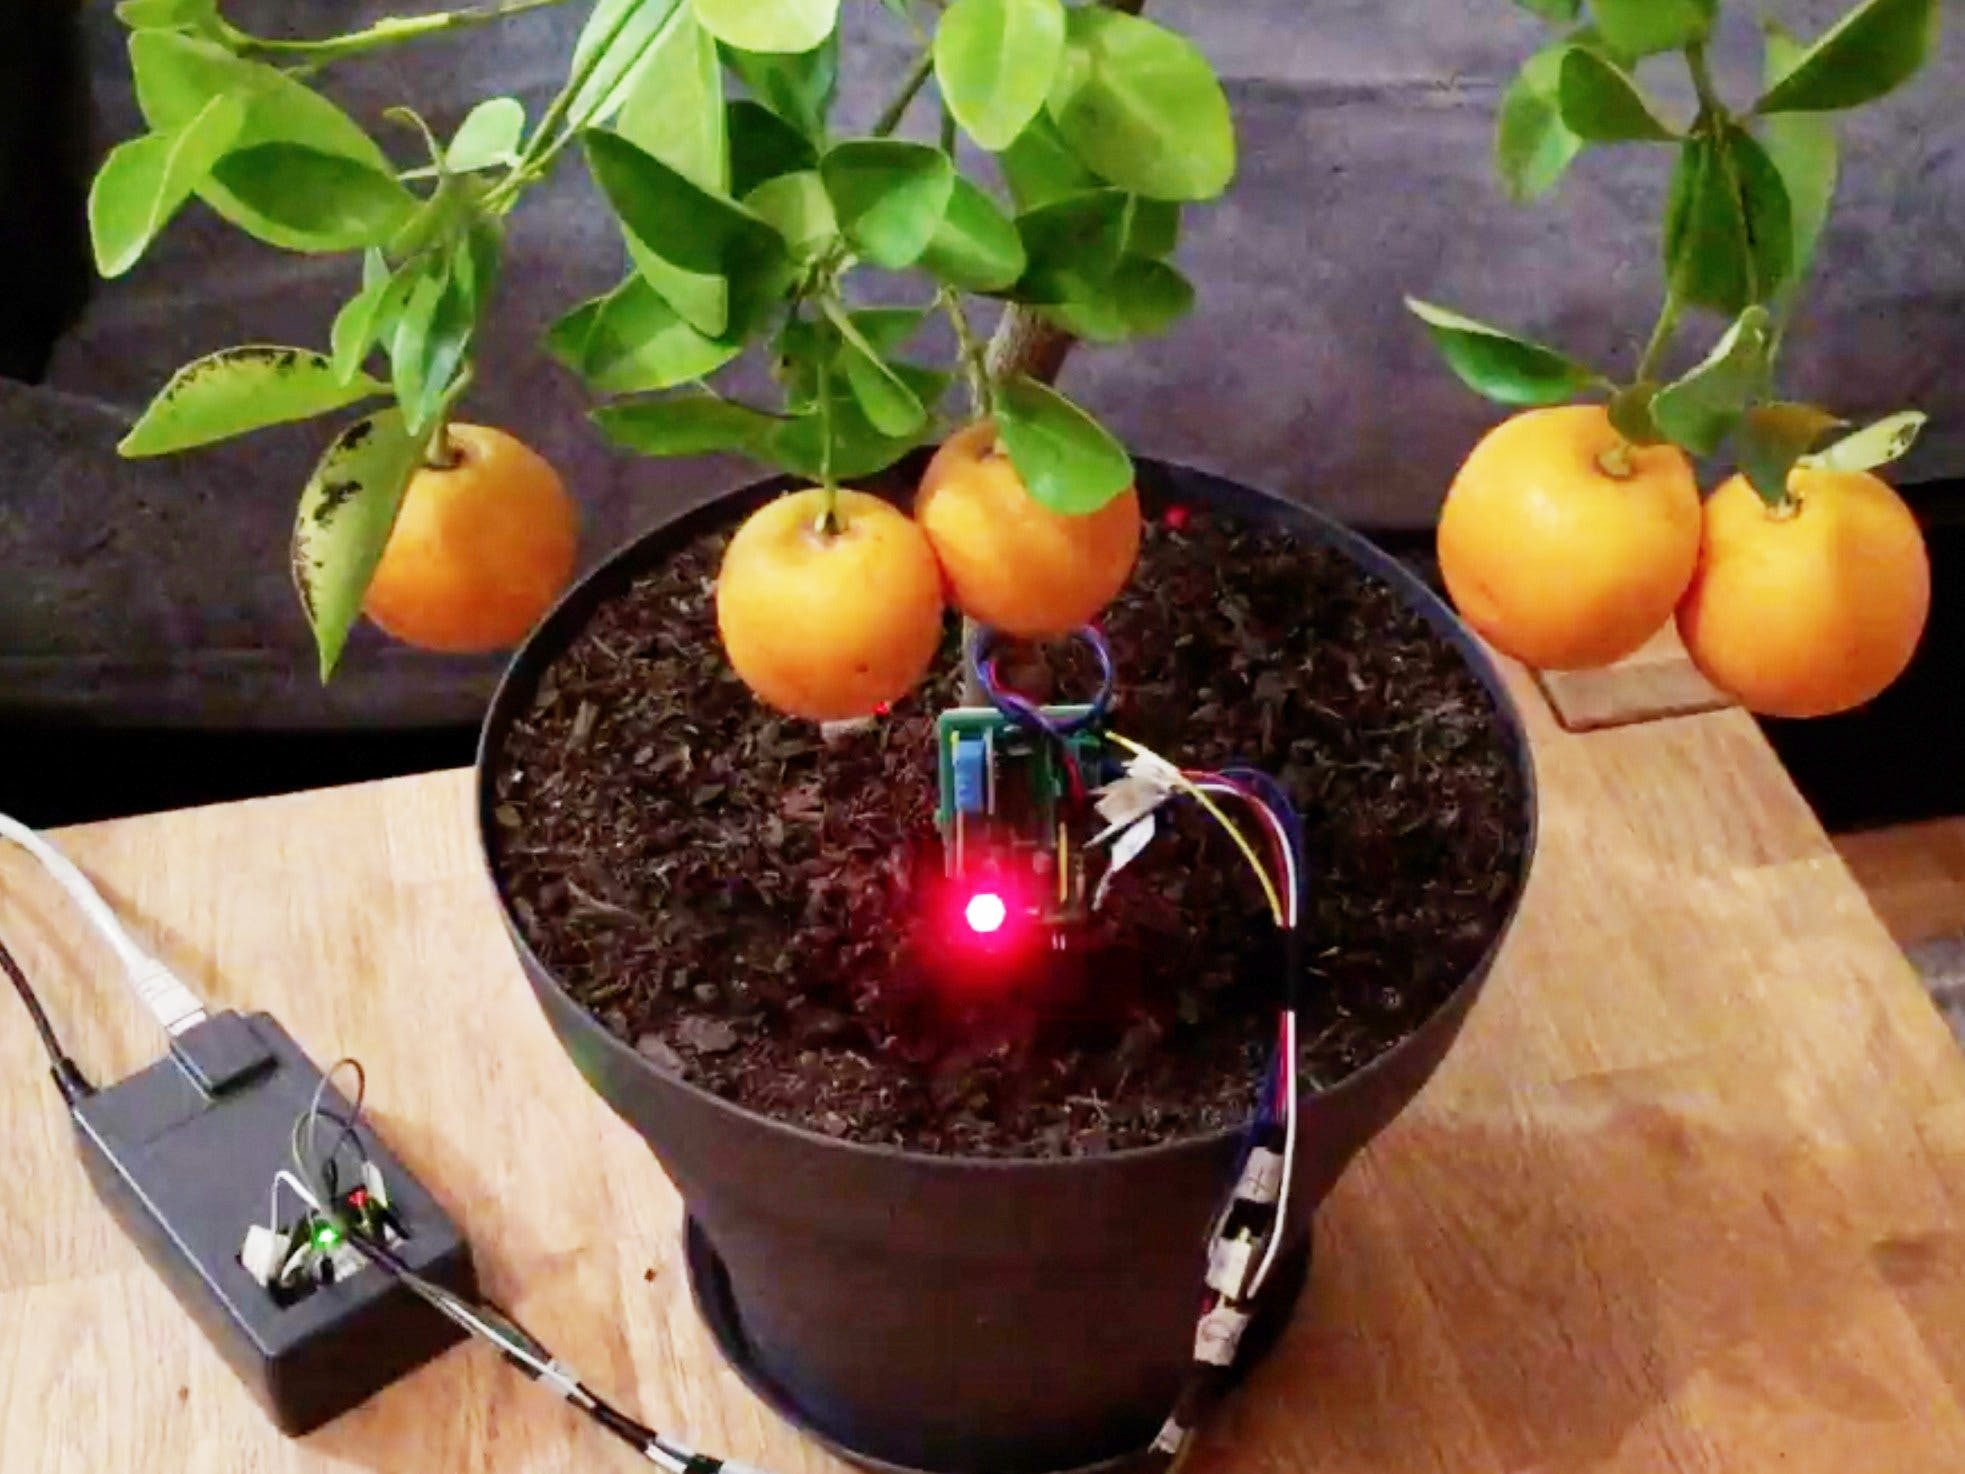 Have a Green Thumb with FlowerDuino